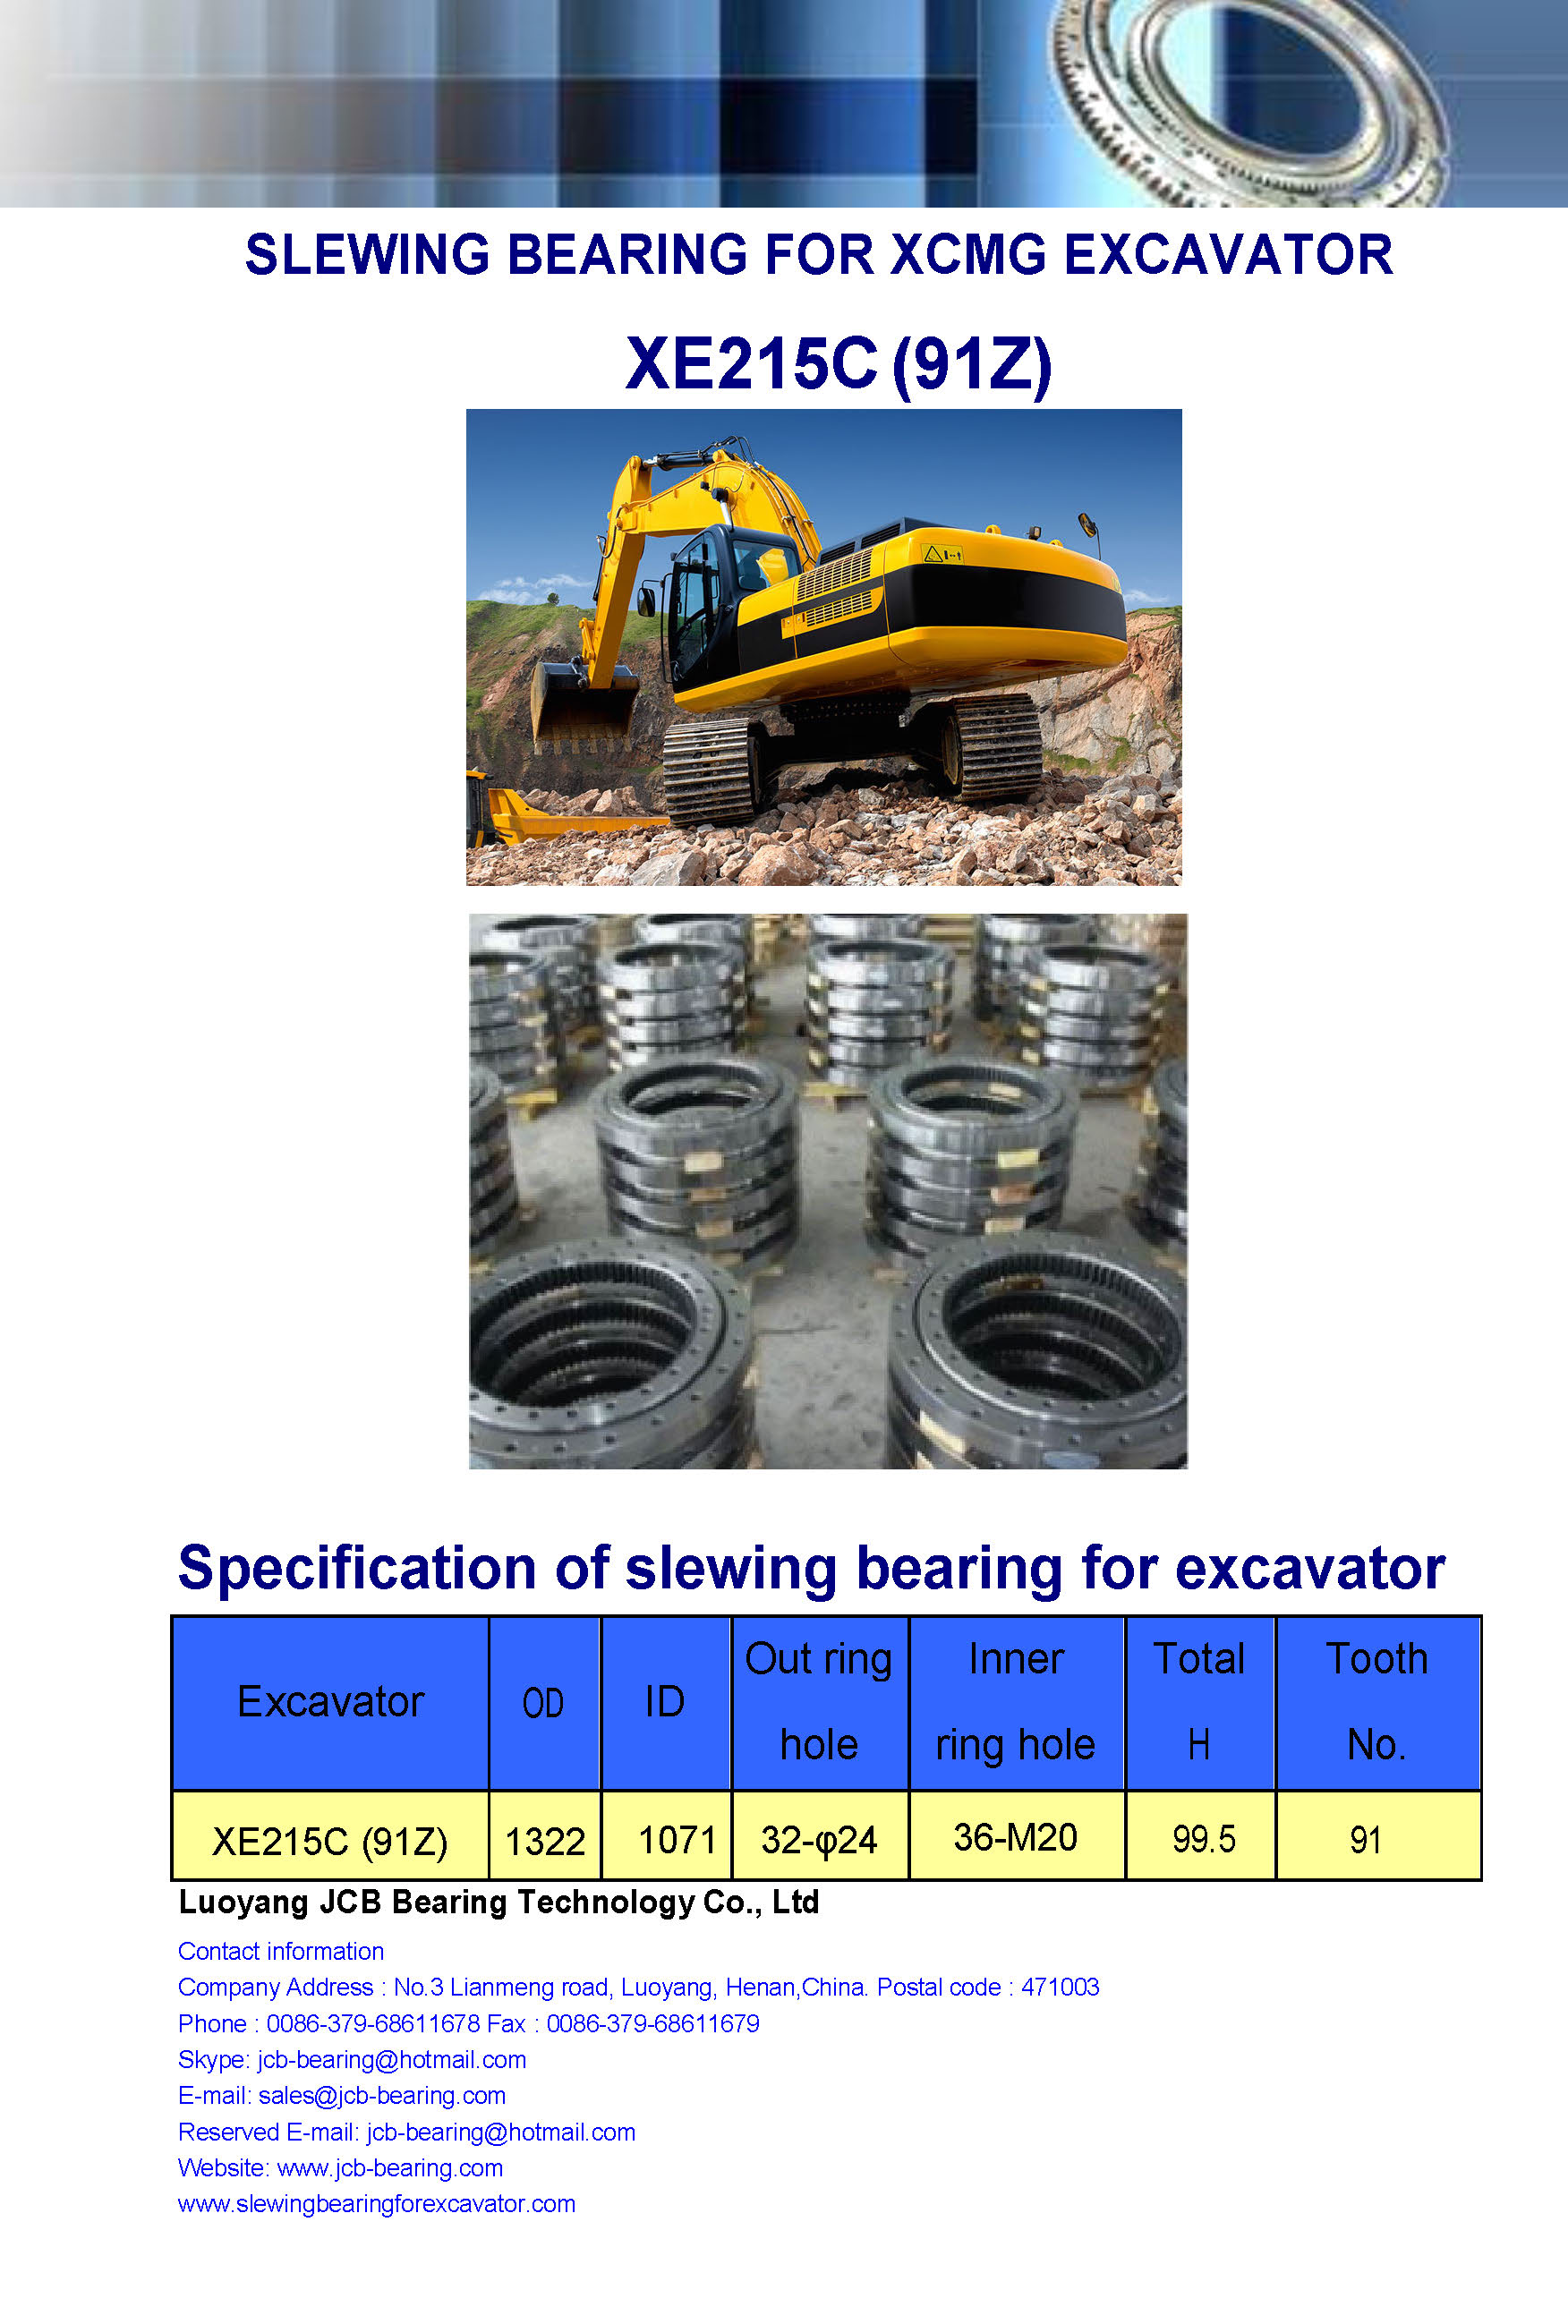 slewing bearing for xcmg excavator XE215C tooth 91 (swing